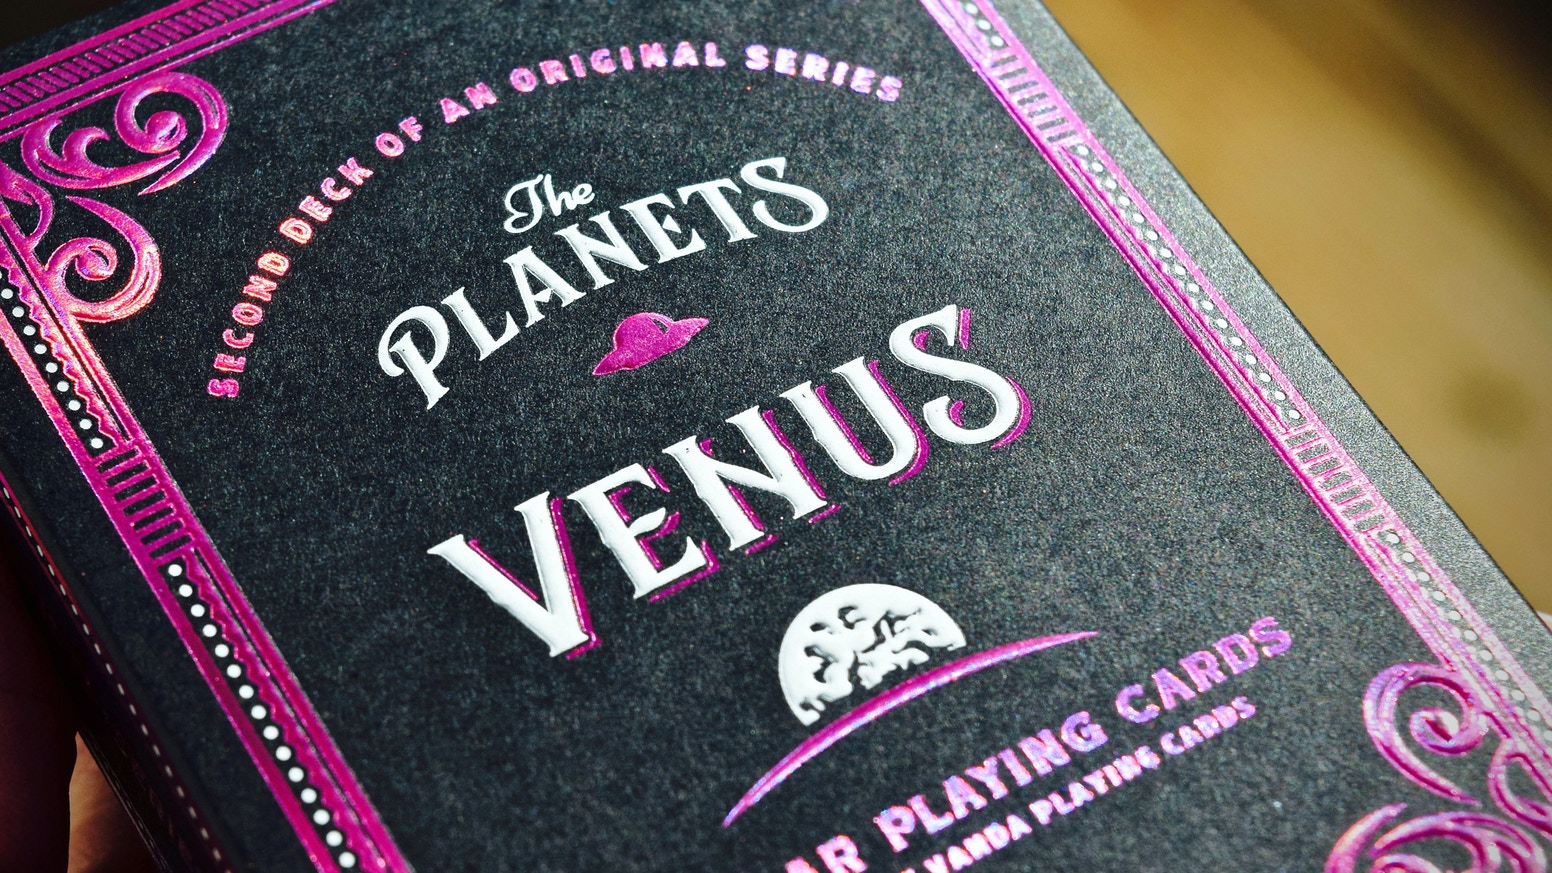 The Planets: Venus Playing Cards [2 of 8] is the top crowdfunding project launched today. The Planets: Venus Playing Cards [2 of 8] raised over $23661 from 556 backers. Other top projects include CORPUS: A Comic Anthology of Bodily Ailments, CARDISTRY NINJAS - KIWI - LIMITED EDITION PLAYING CARDS, Doggo Date Enamel Pins: Shibaes...